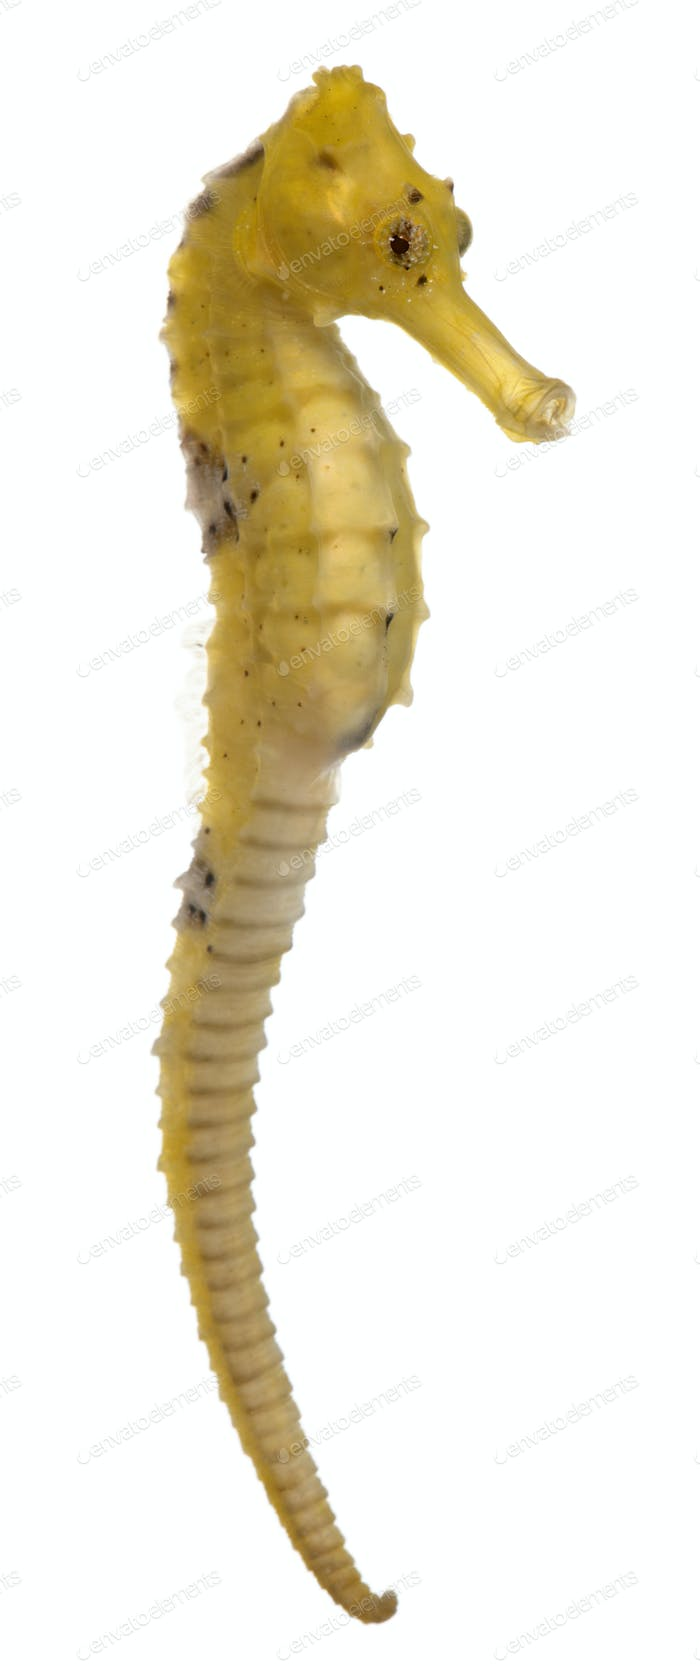 Longsnout seahorse or Slender seahorse, Hippocampus reidi yellowish, in front of white background